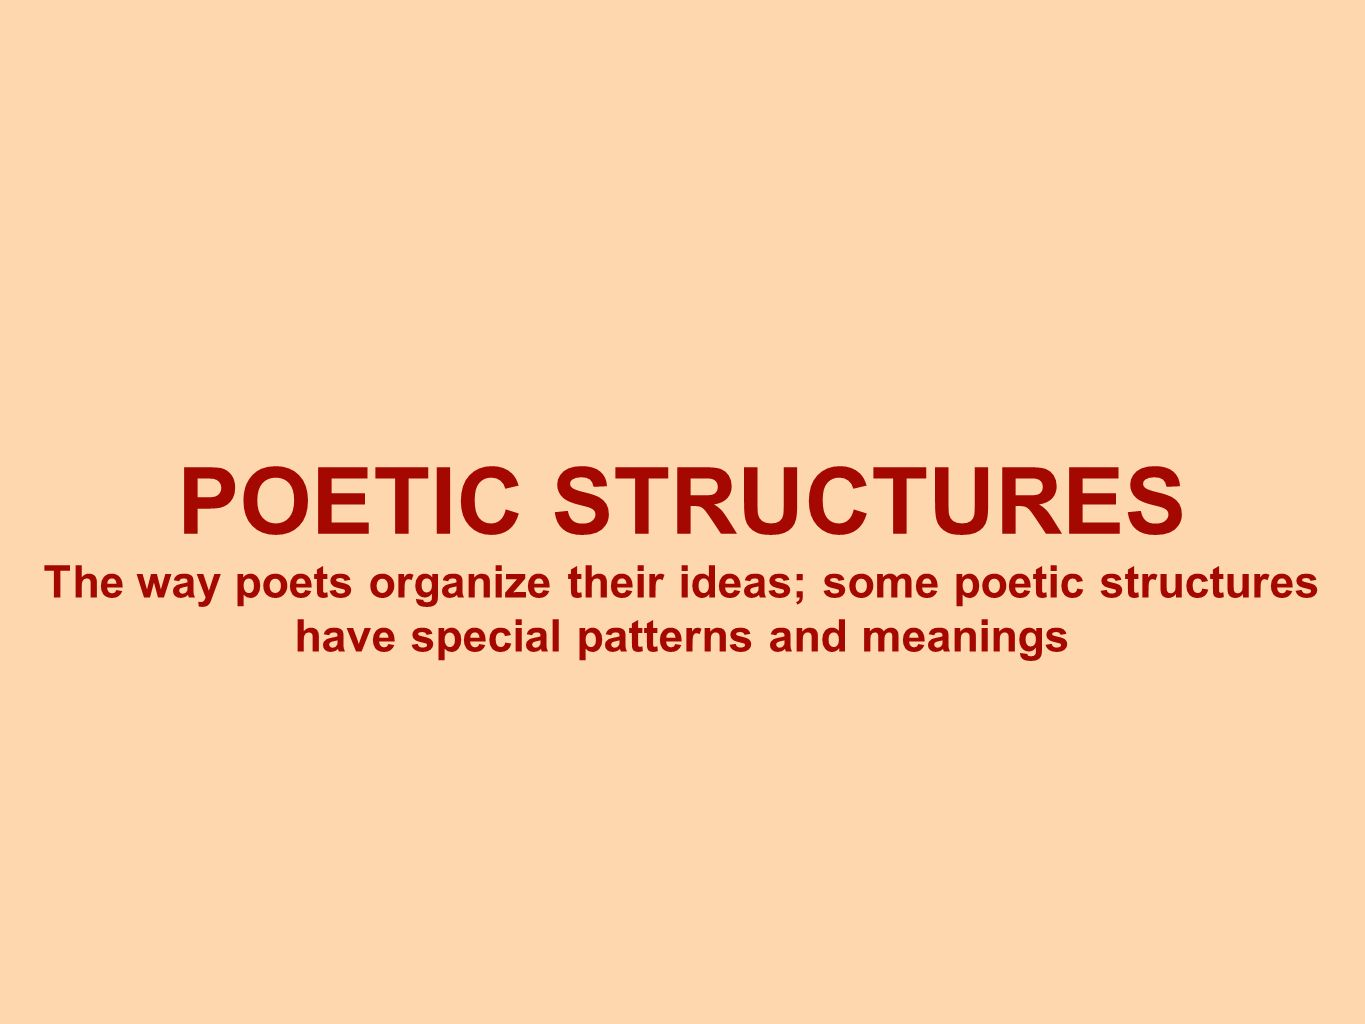 POETIC STRUCTURES The way poets organize their ideas; some poetic structures have special patterns and meanings